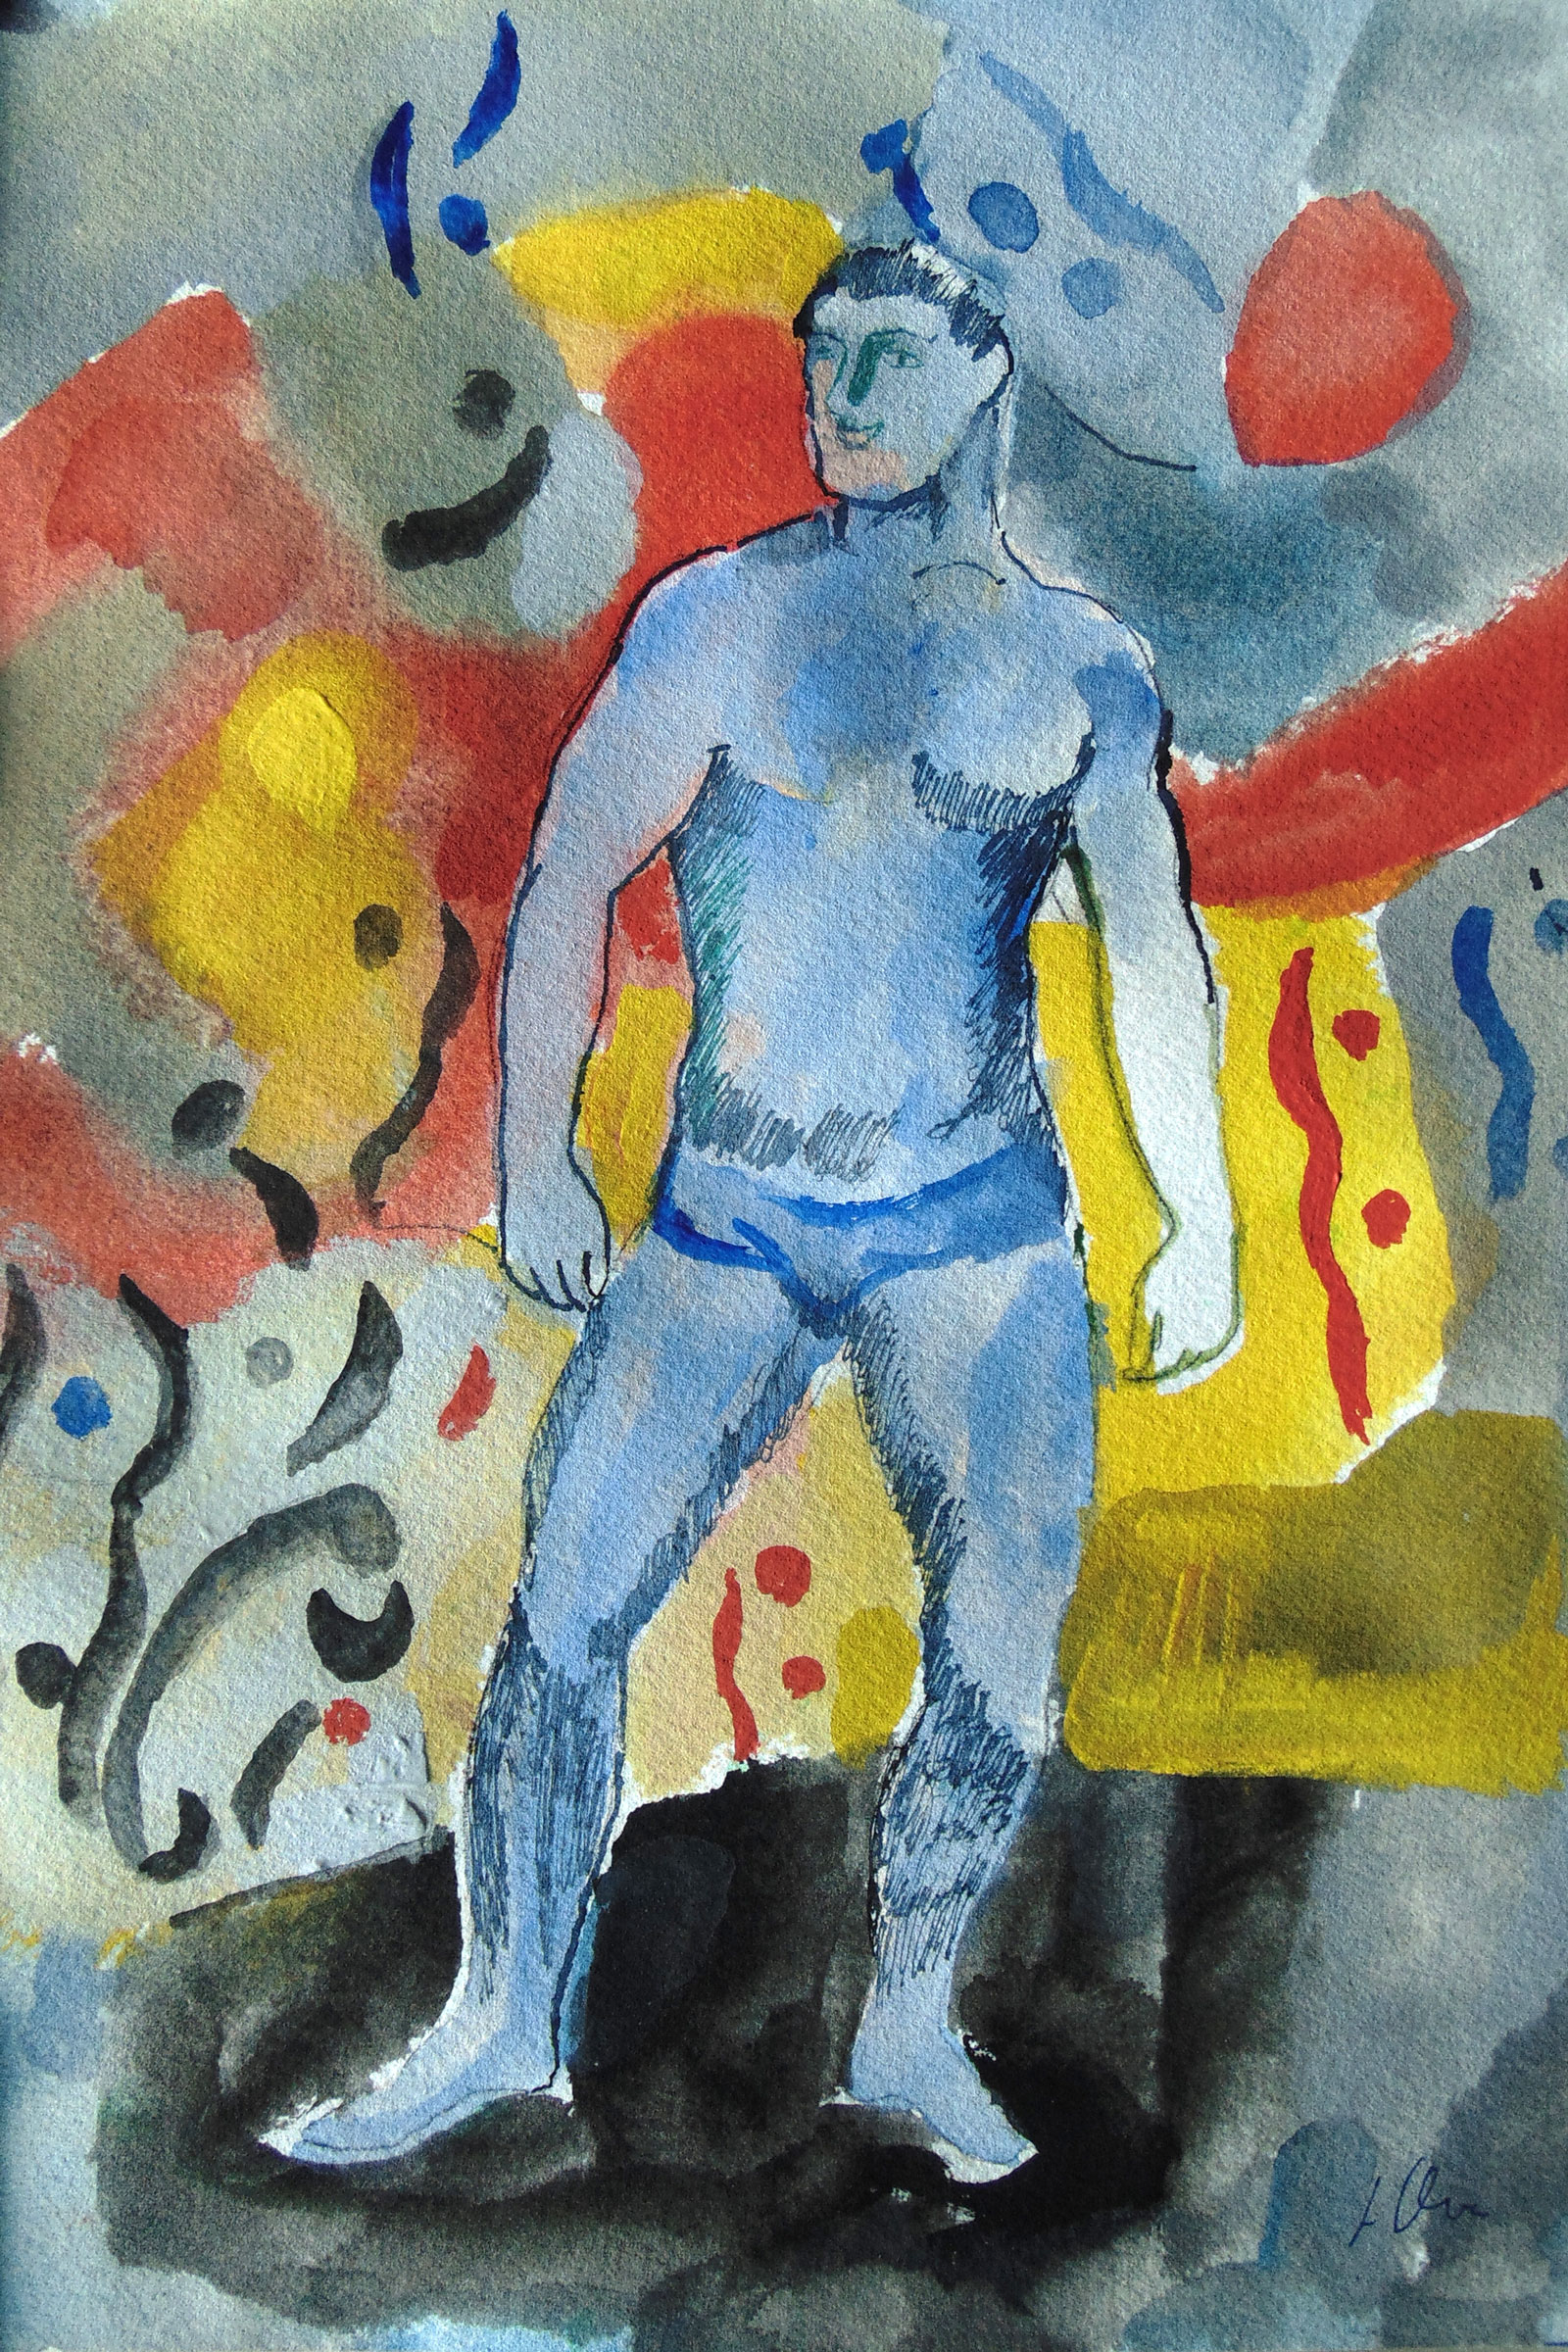 Sandro Chia 2019